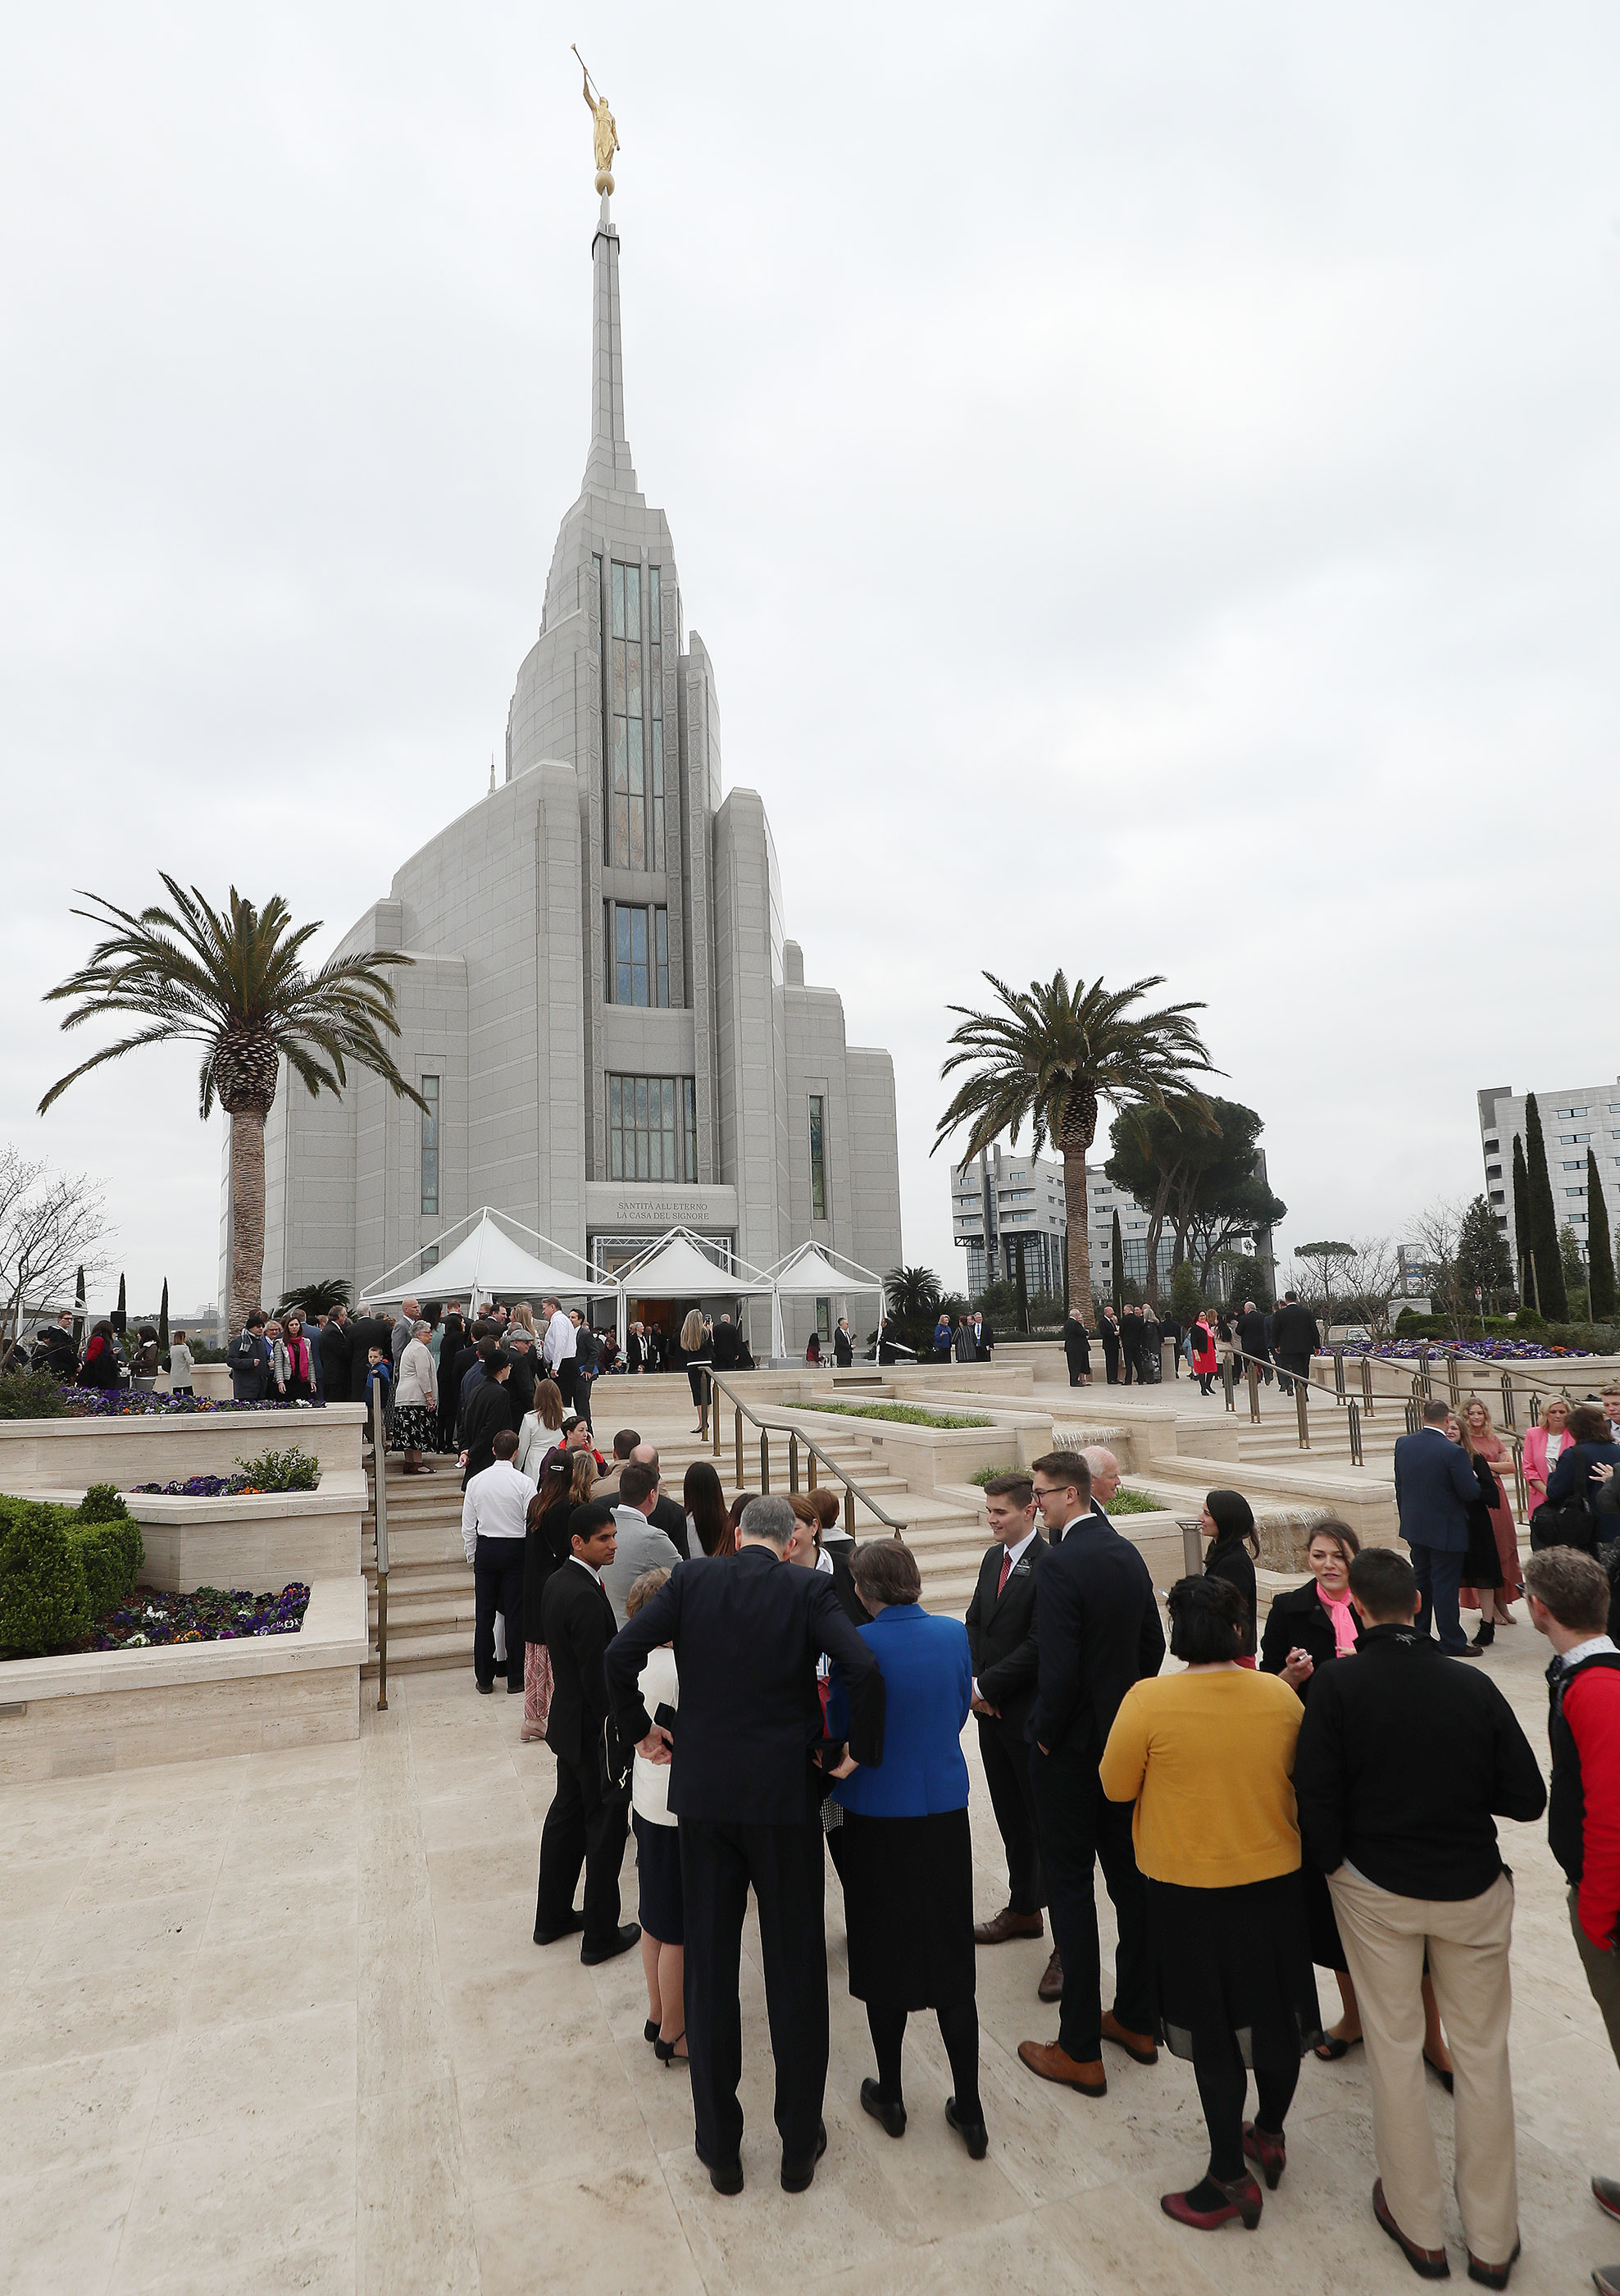 Attendees stand in line for the dedication of the Rome Italy Temple of The Church of Jesus Christ of Latter-day Saints in Rome, Italy, on Sunday, March 10, 2019.